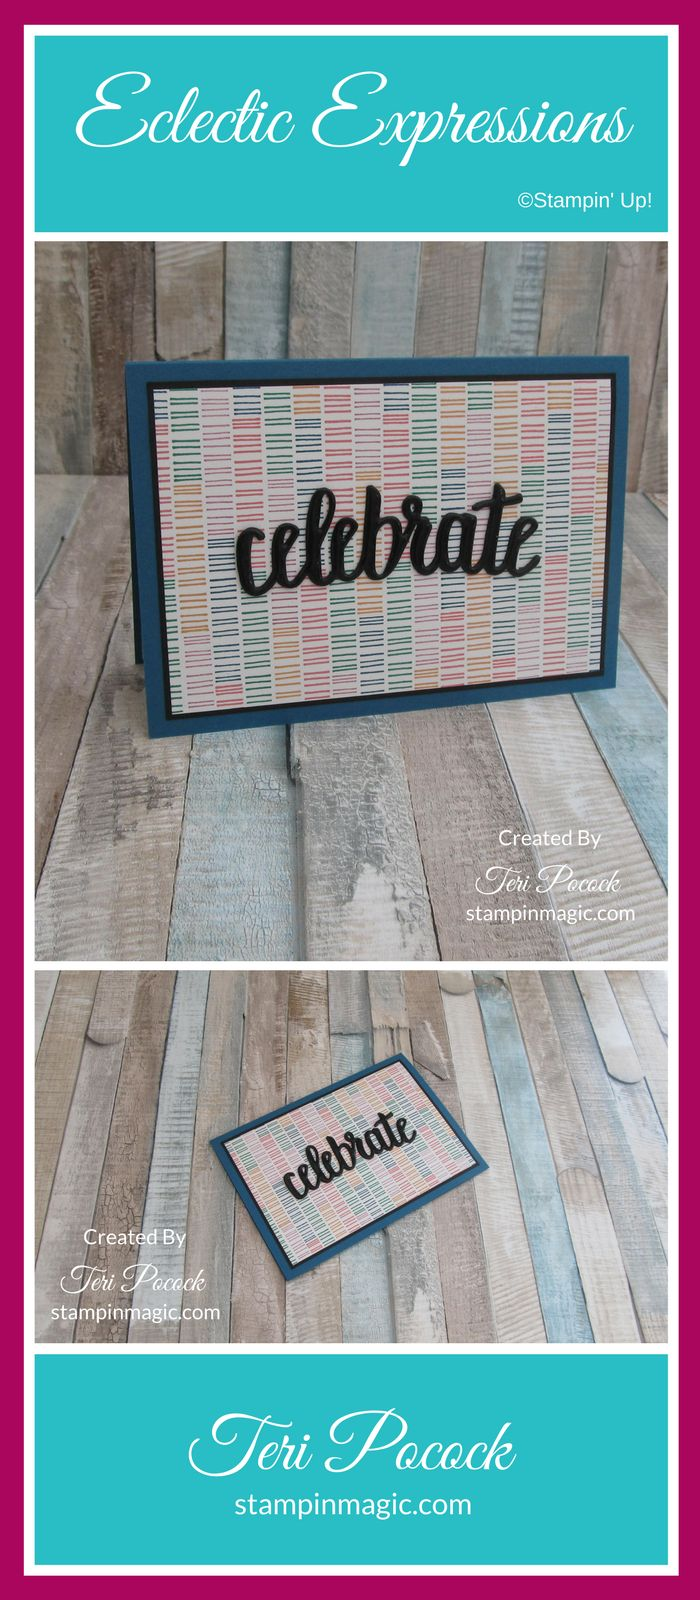 Eclectic Expressions by Stampin Up. Created by UK Independent Demonstrator Teri Pocock. Click through for more details.#teripocock #stampinup #stampinupuk #eclecticexpressions